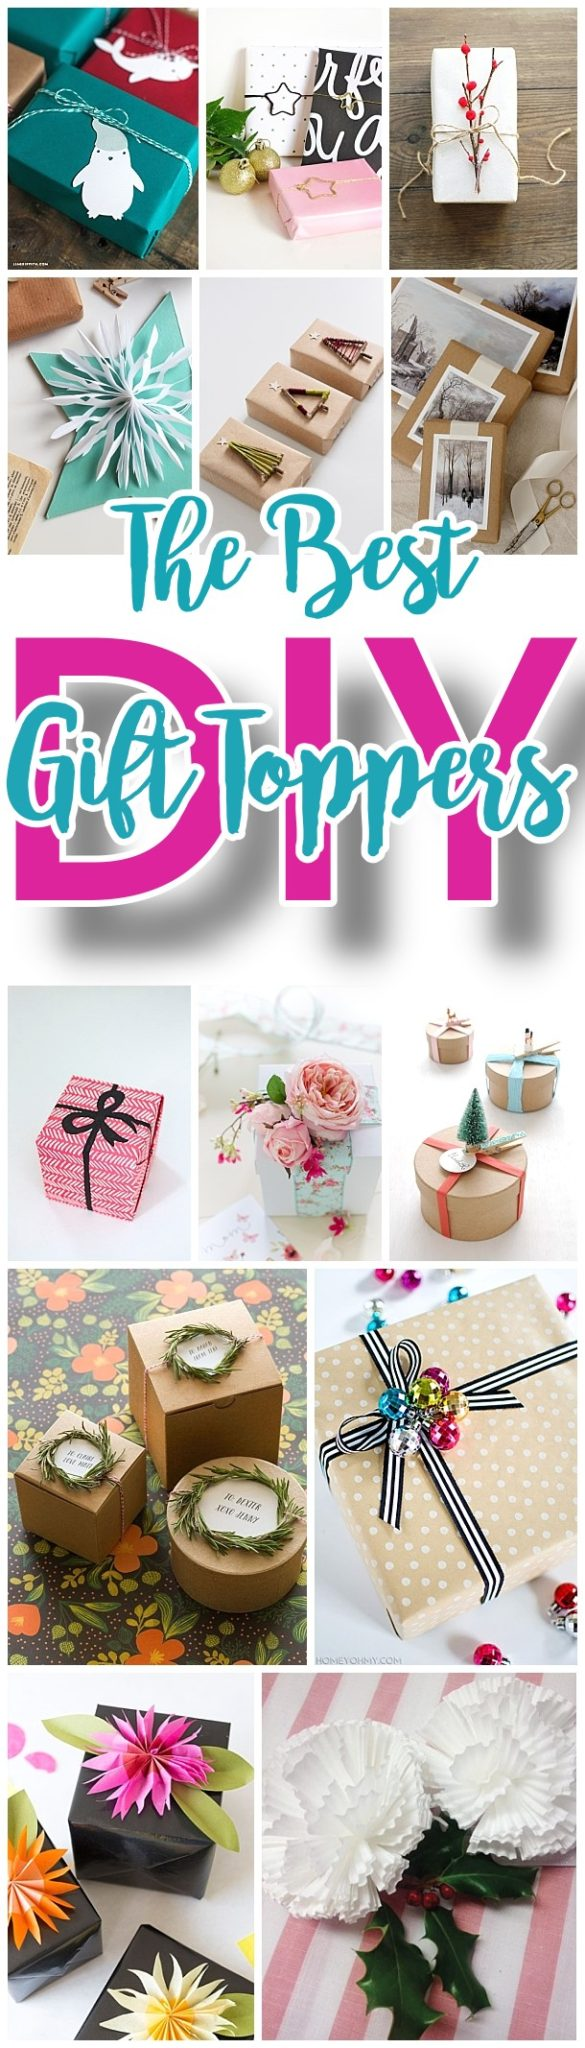 The BEST DIY Gift Toppers - pretty handmade EASY, CHEAP and fun gift wrapping ideas for Christmas Birthdays Holidays and any time you want someone to feel extra special!